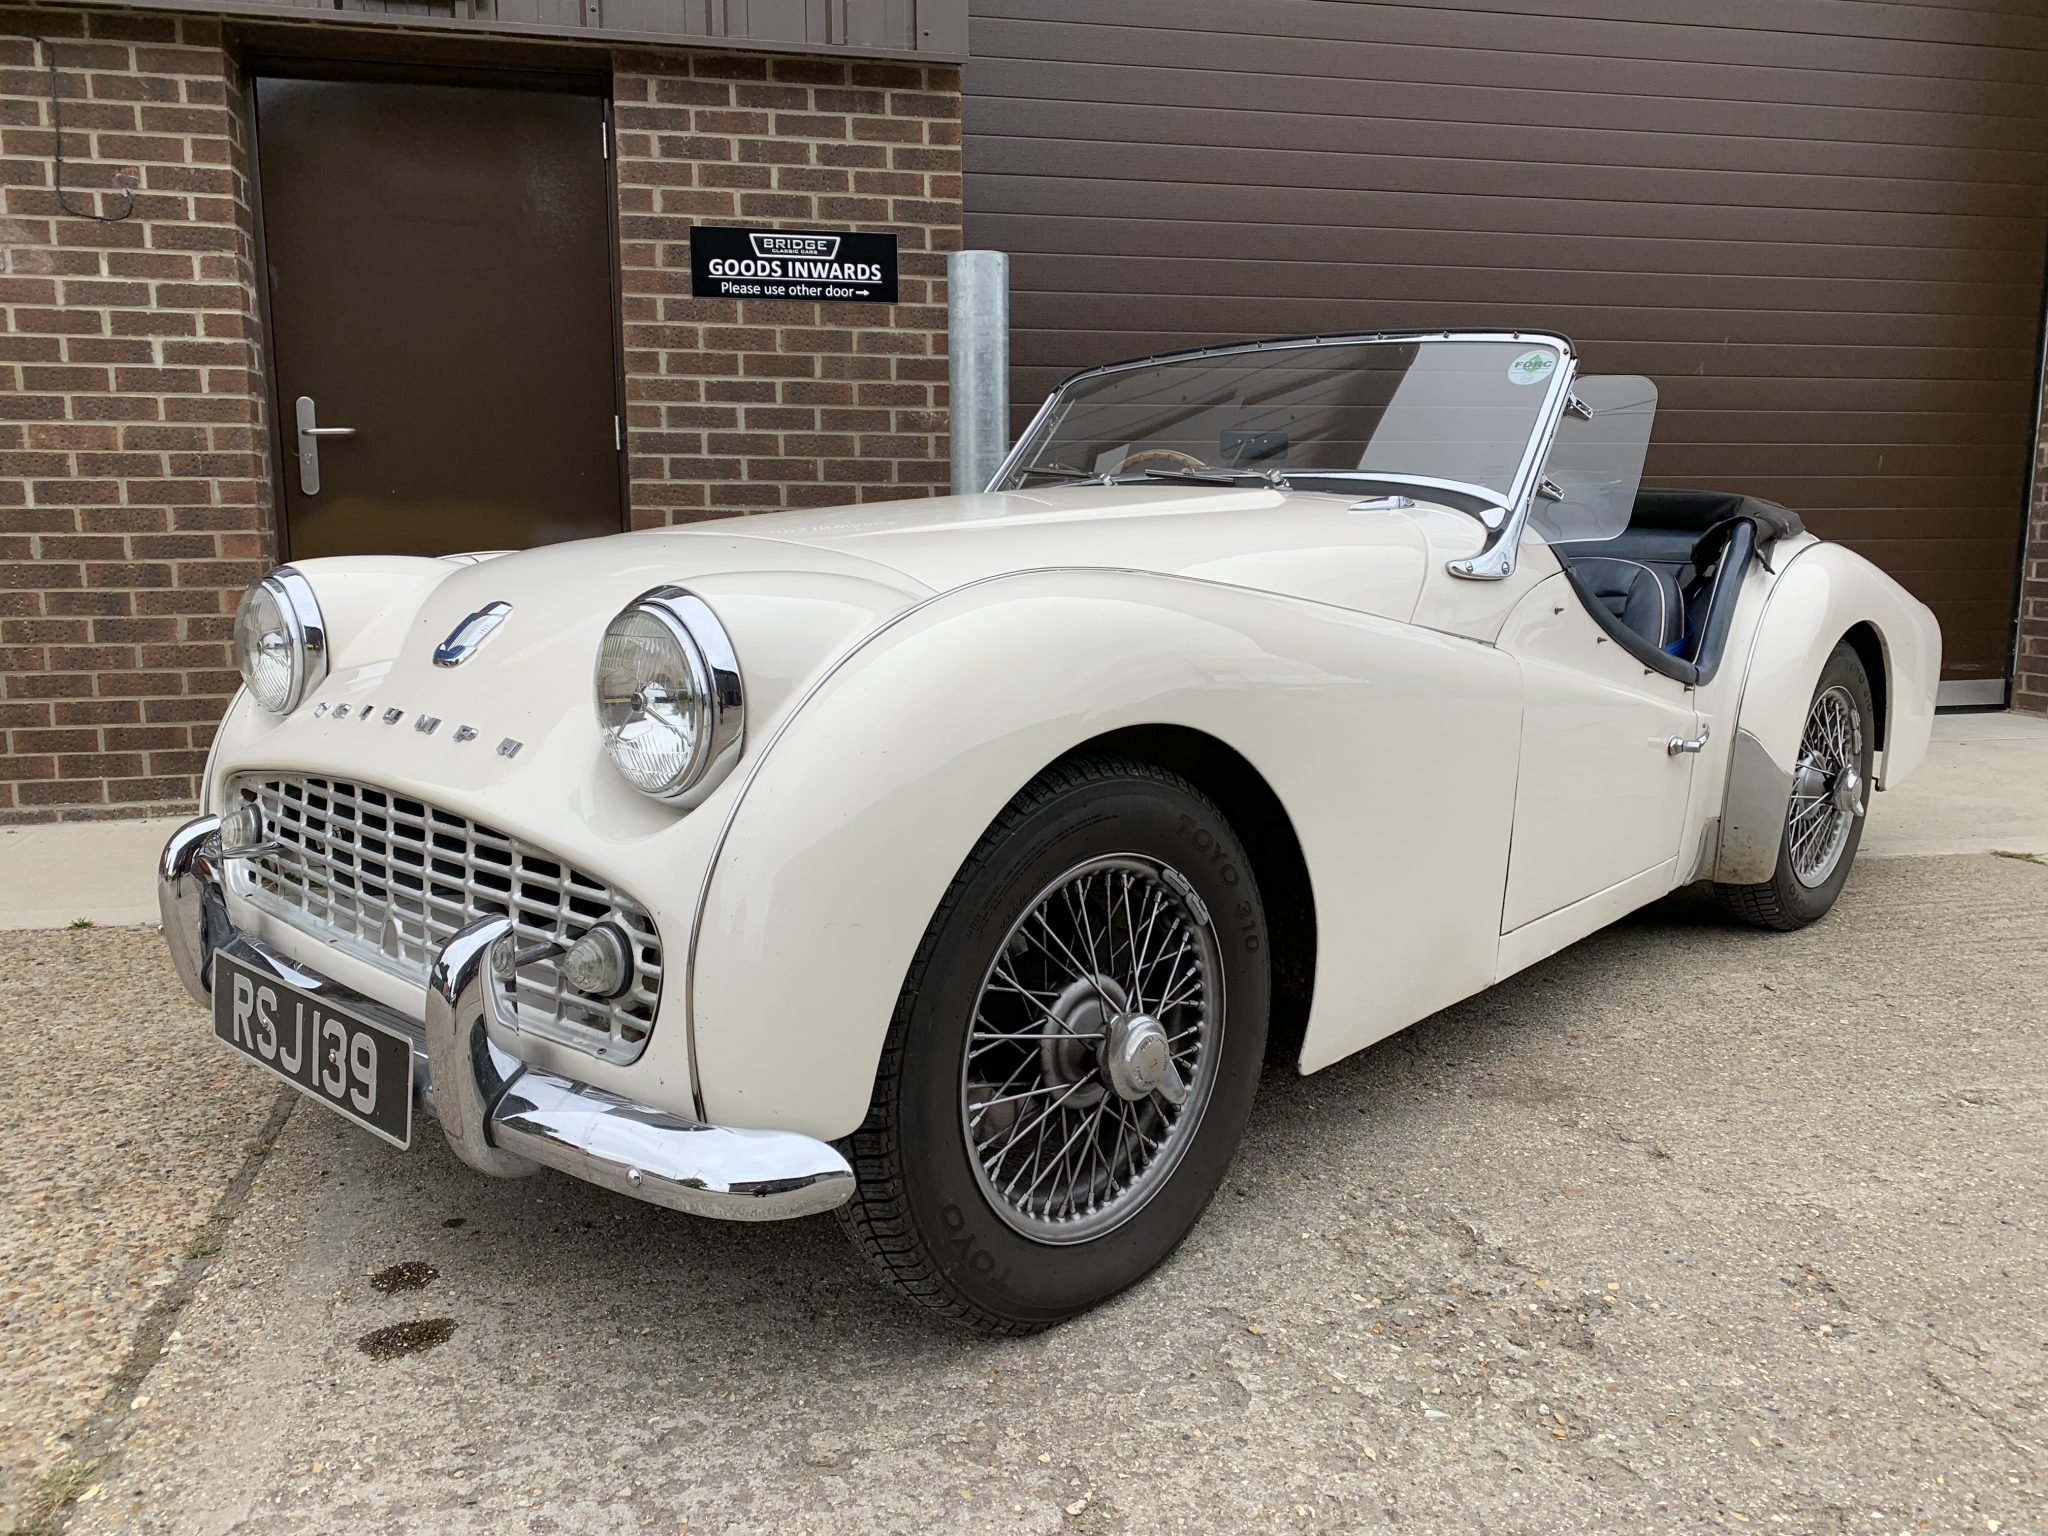 Our 1959 Triumph TR3 arriving